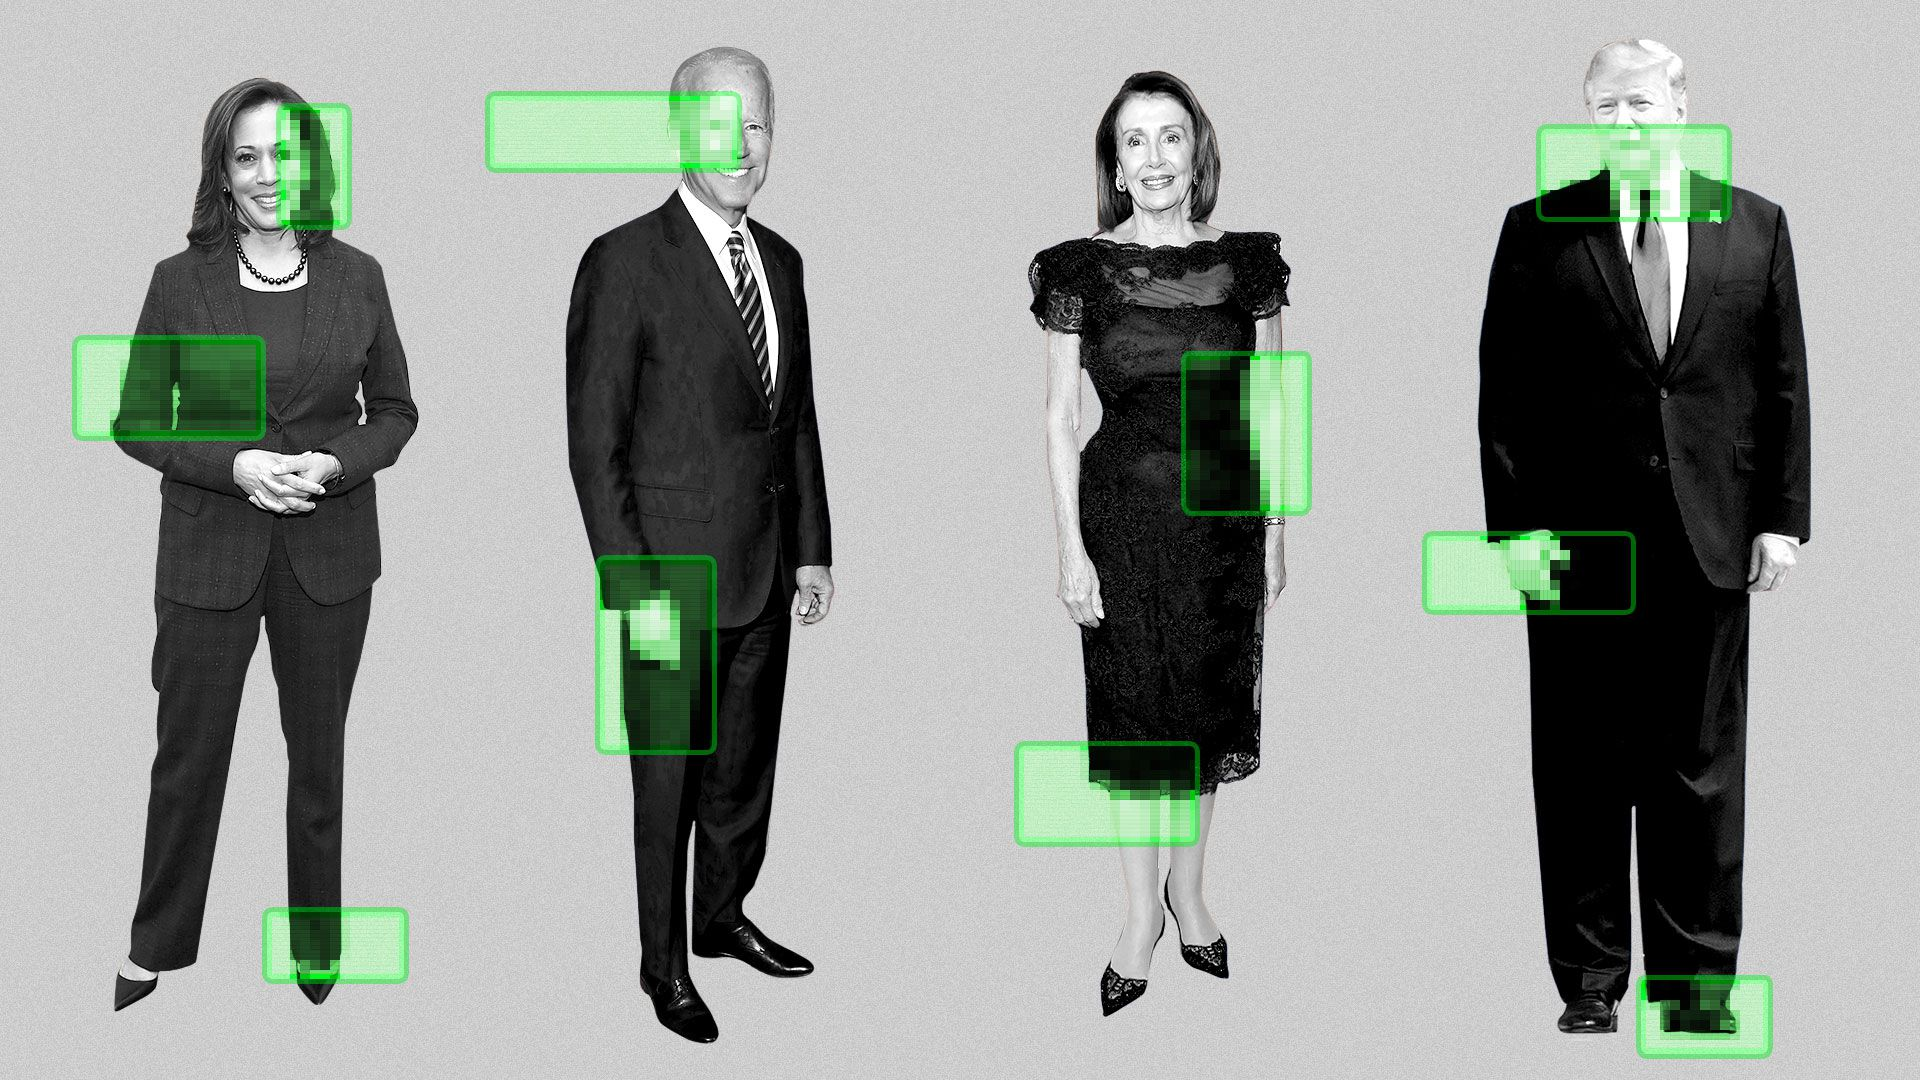 Illustration of Kamala Harris, Joe Biden, Nancy Pelosi and President Trump with various areas highlighted with scan lines and a pixel pattern.